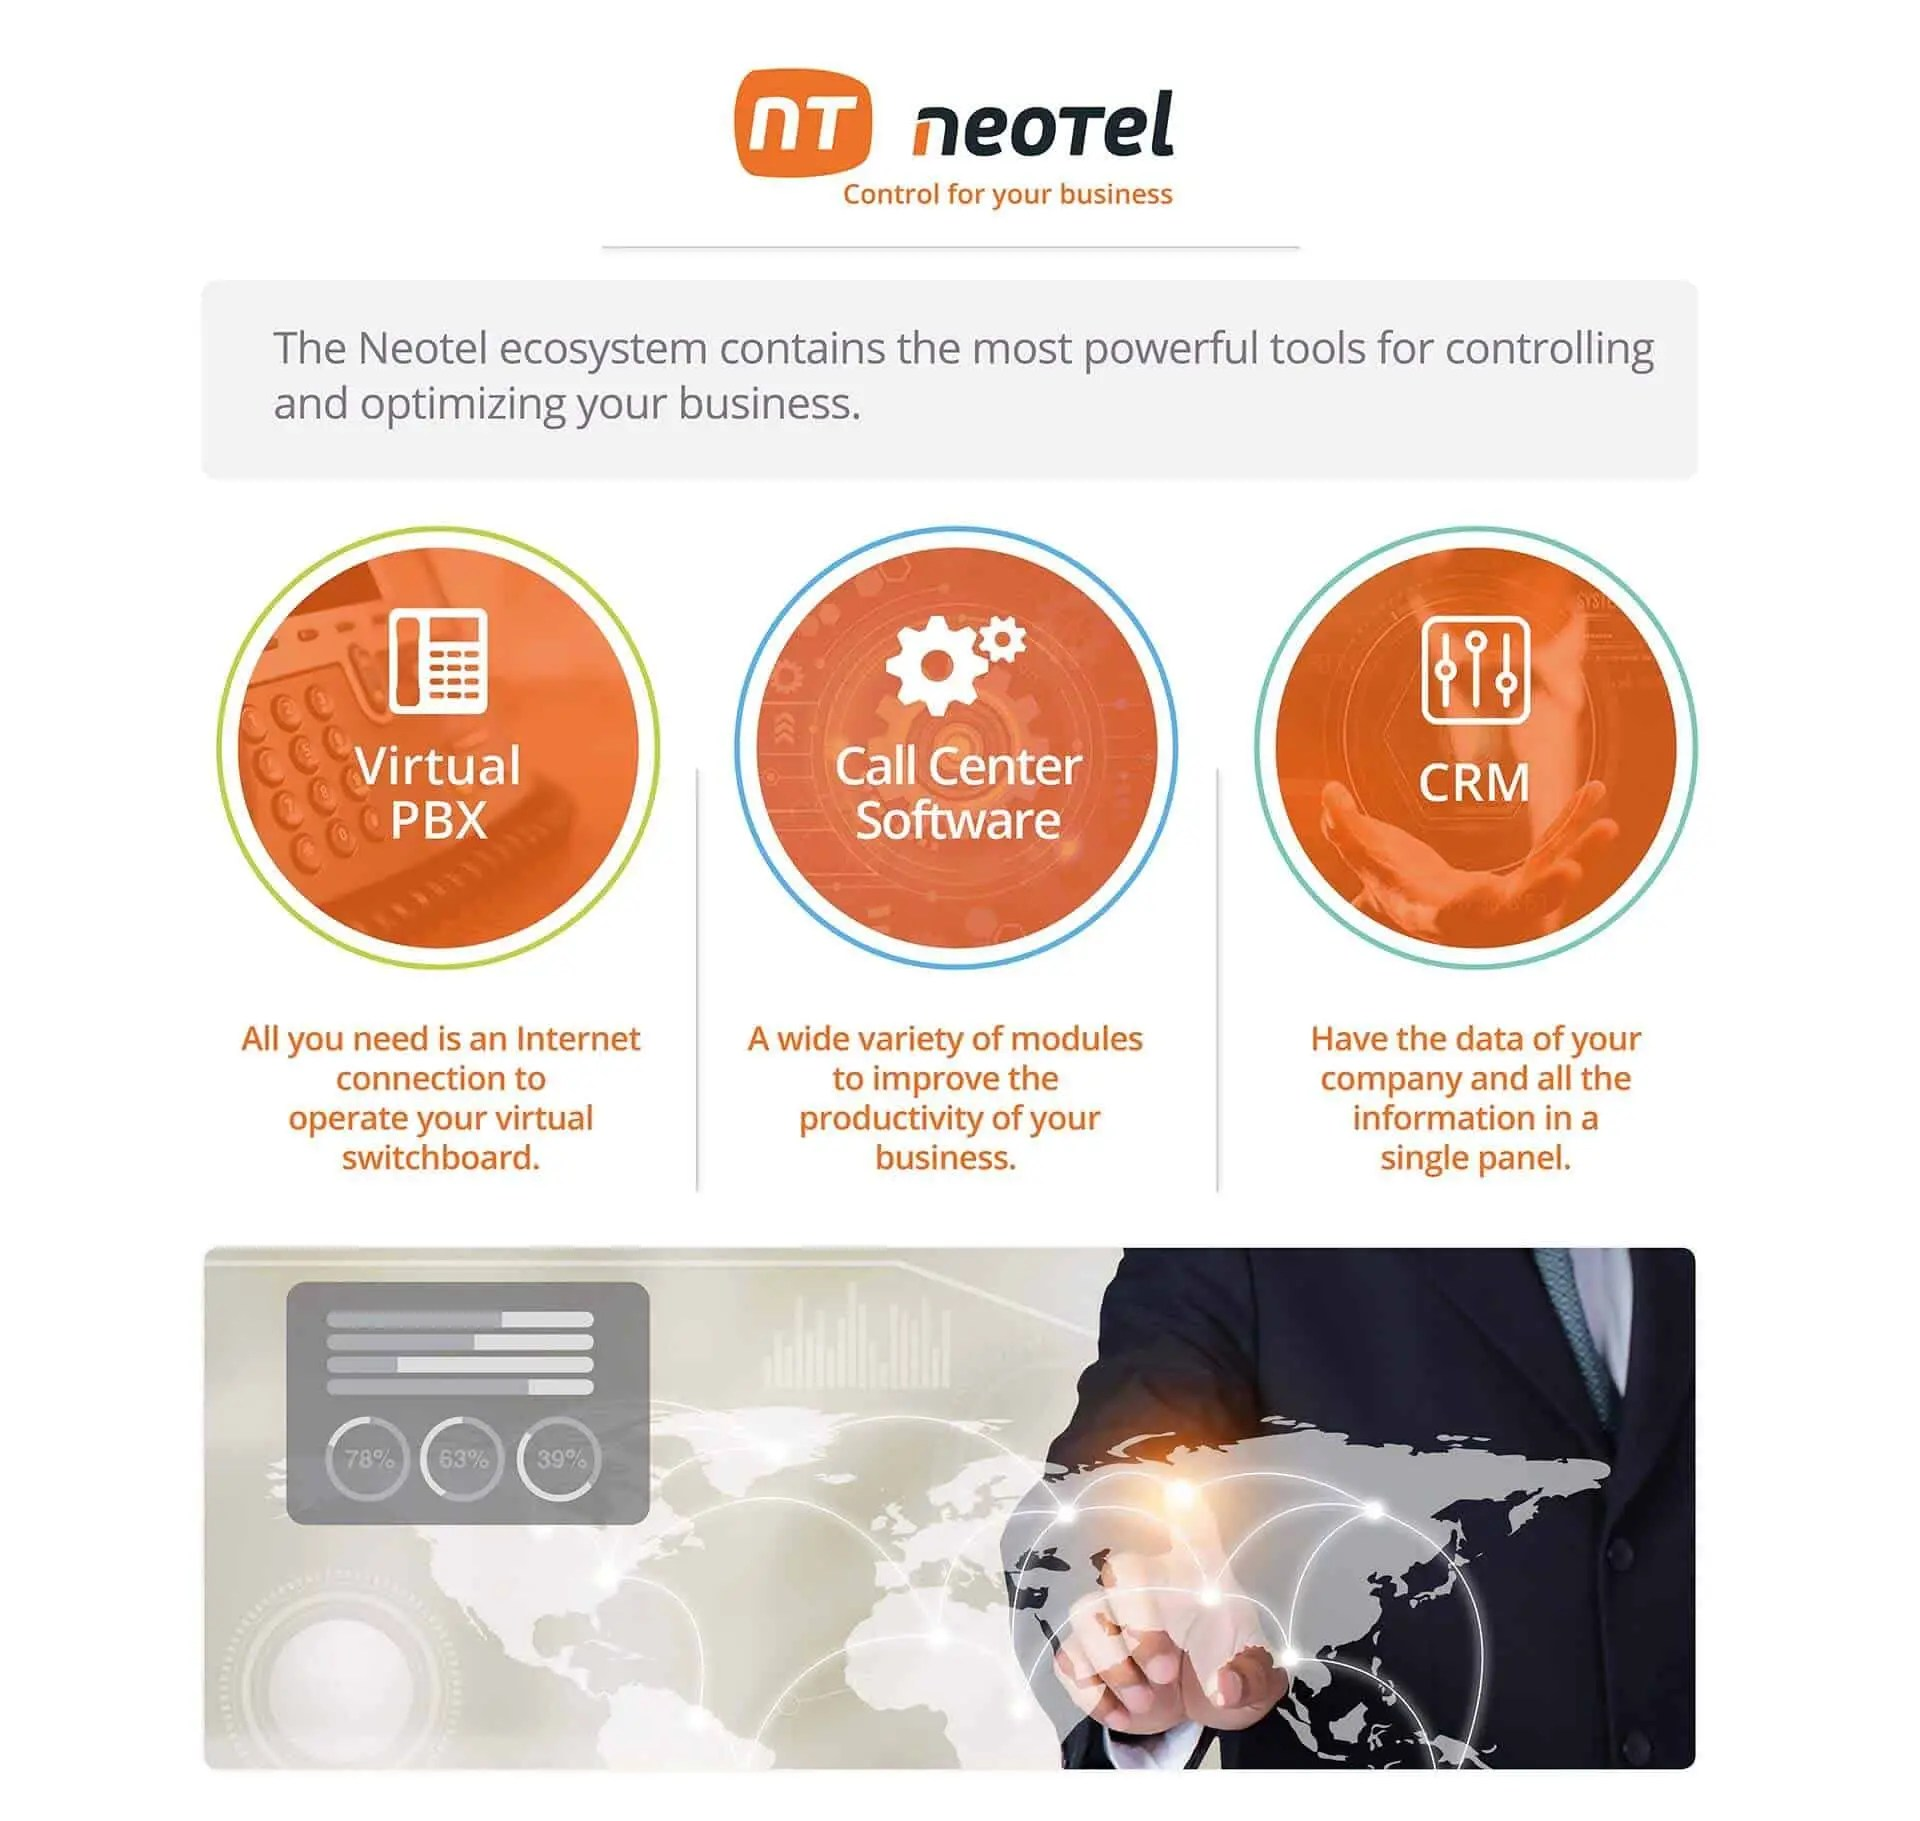 Neotel virtual pbx call center software and crm